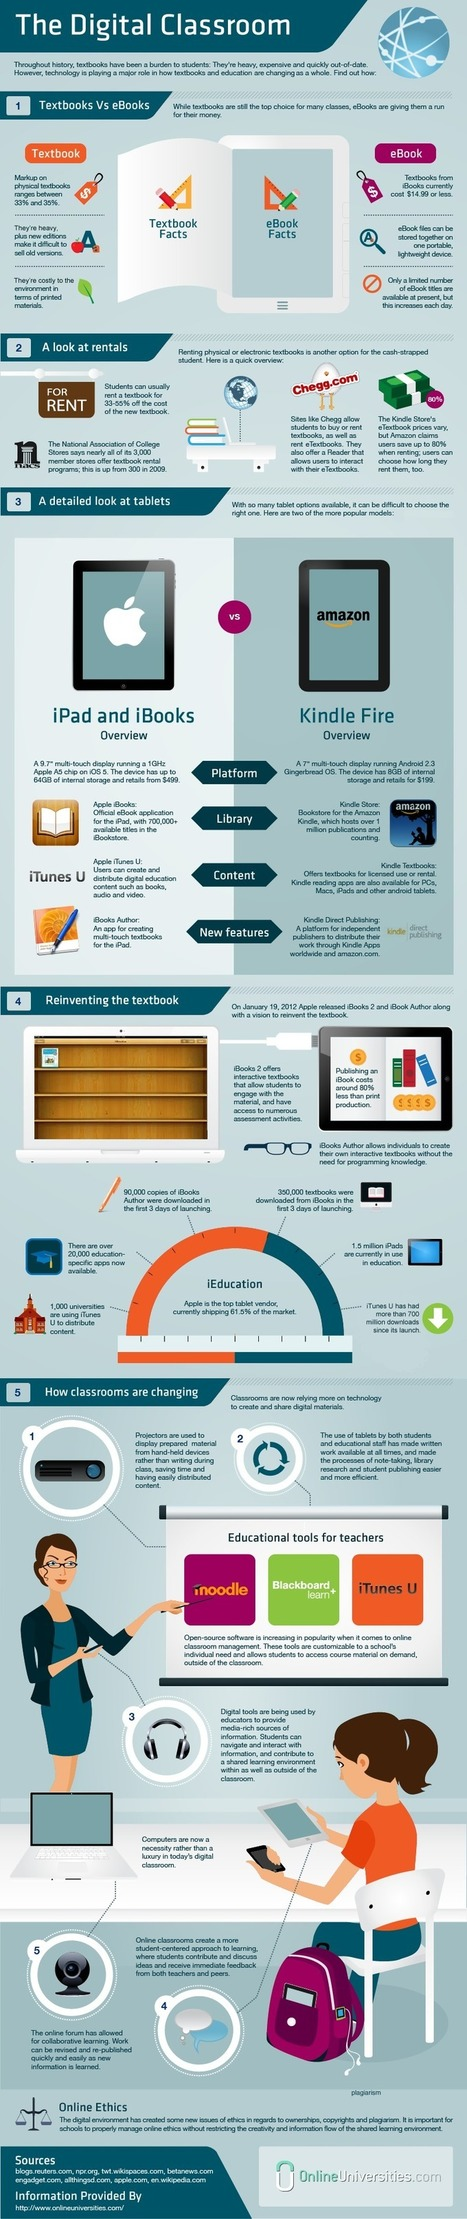 Infographic: The Digital Classroom | Everything iPads | Edtech PK-12 | Scoop.it